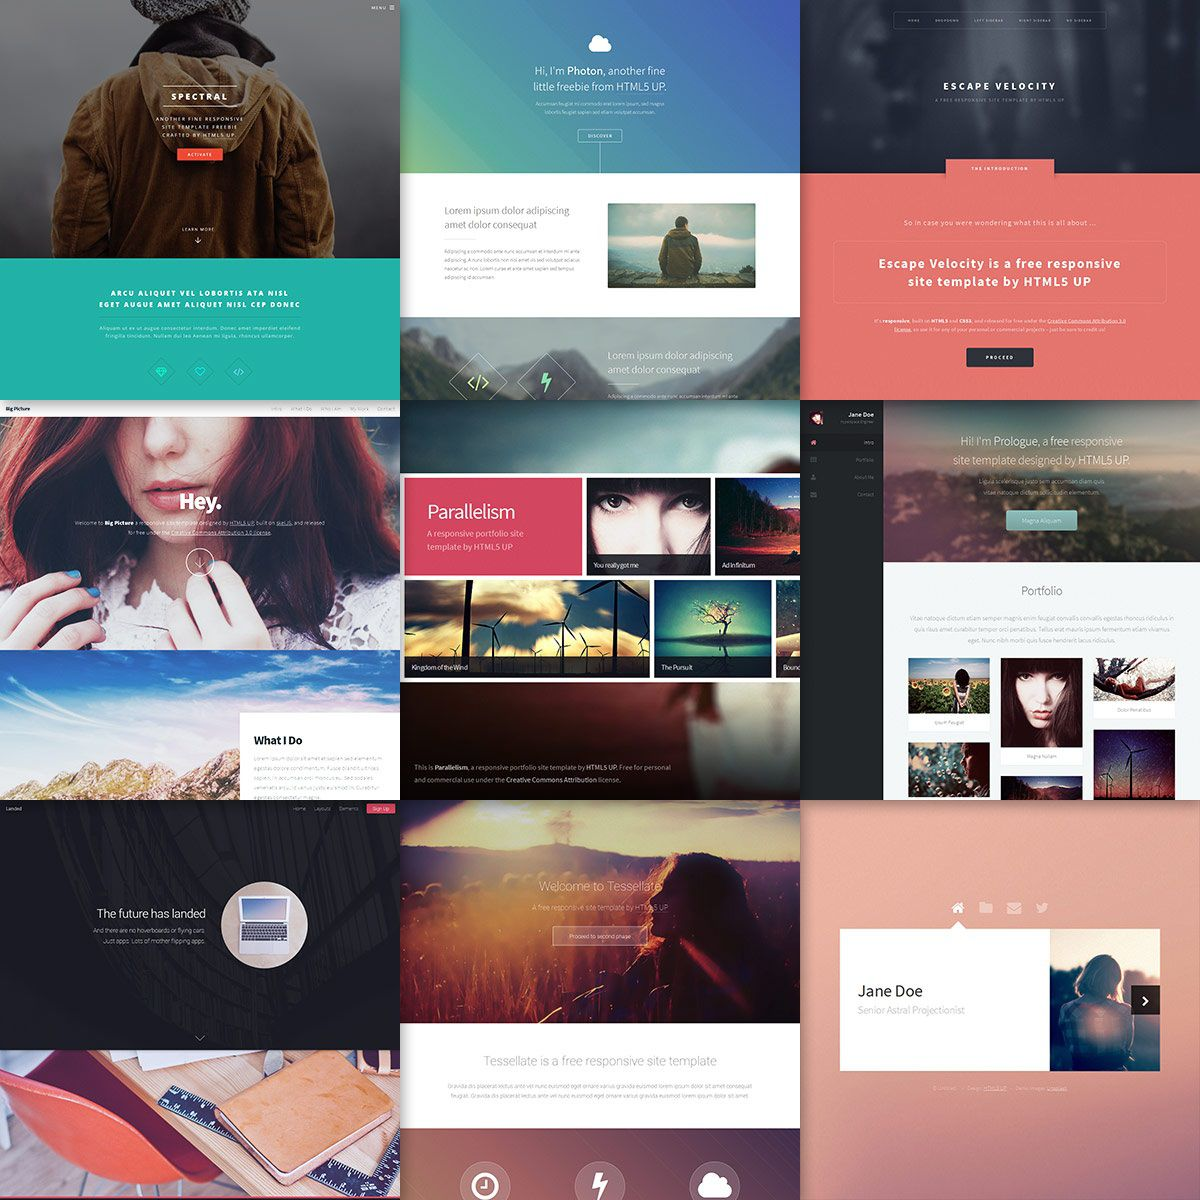 002 Incredible Download Web Template Html5 Idea  Photography Website Free Logistic BusinesFull